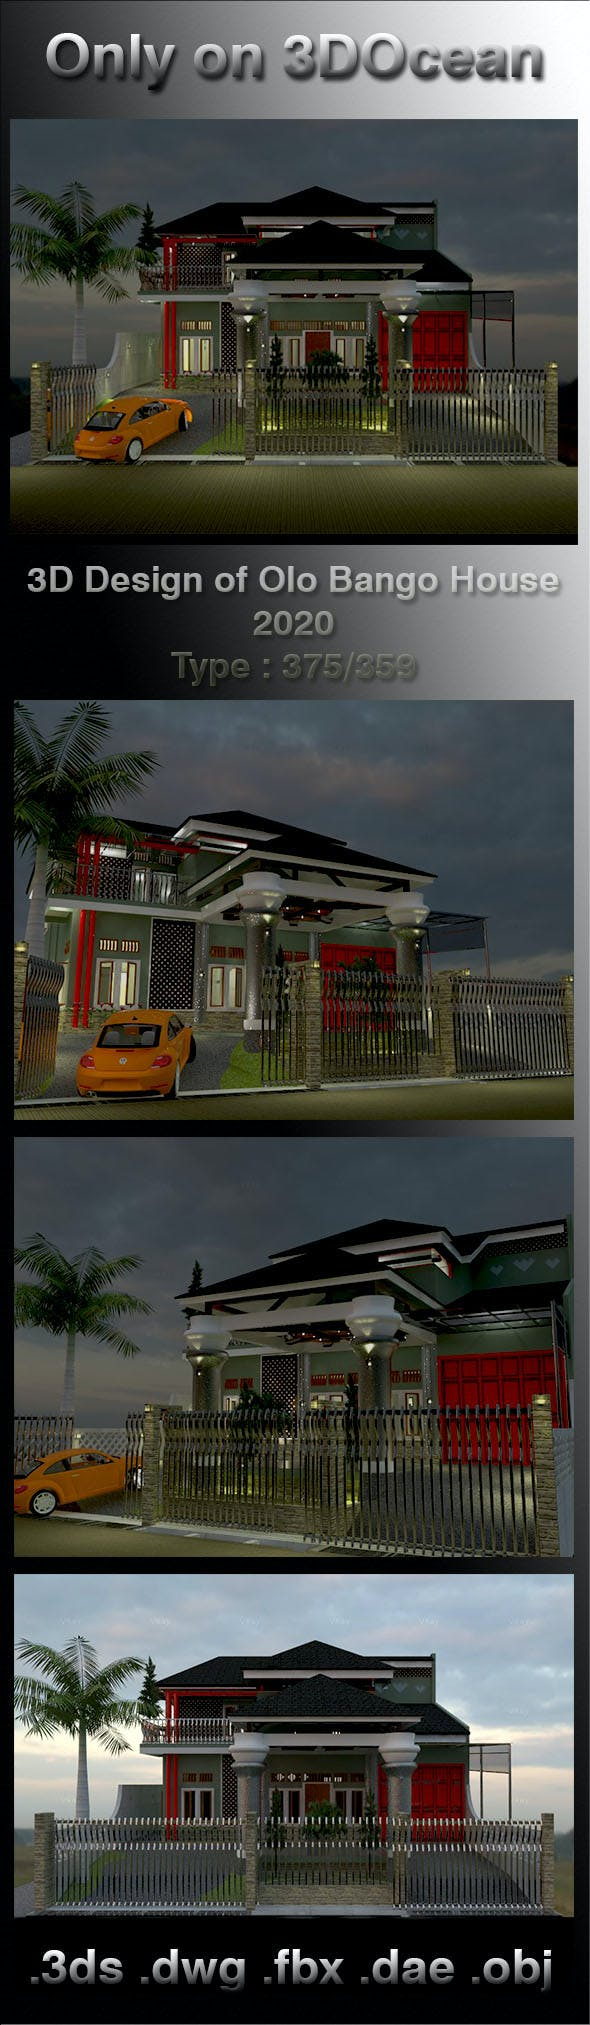 3D Design of Olo Bango House 2020 - 3DOcean Item for Sale